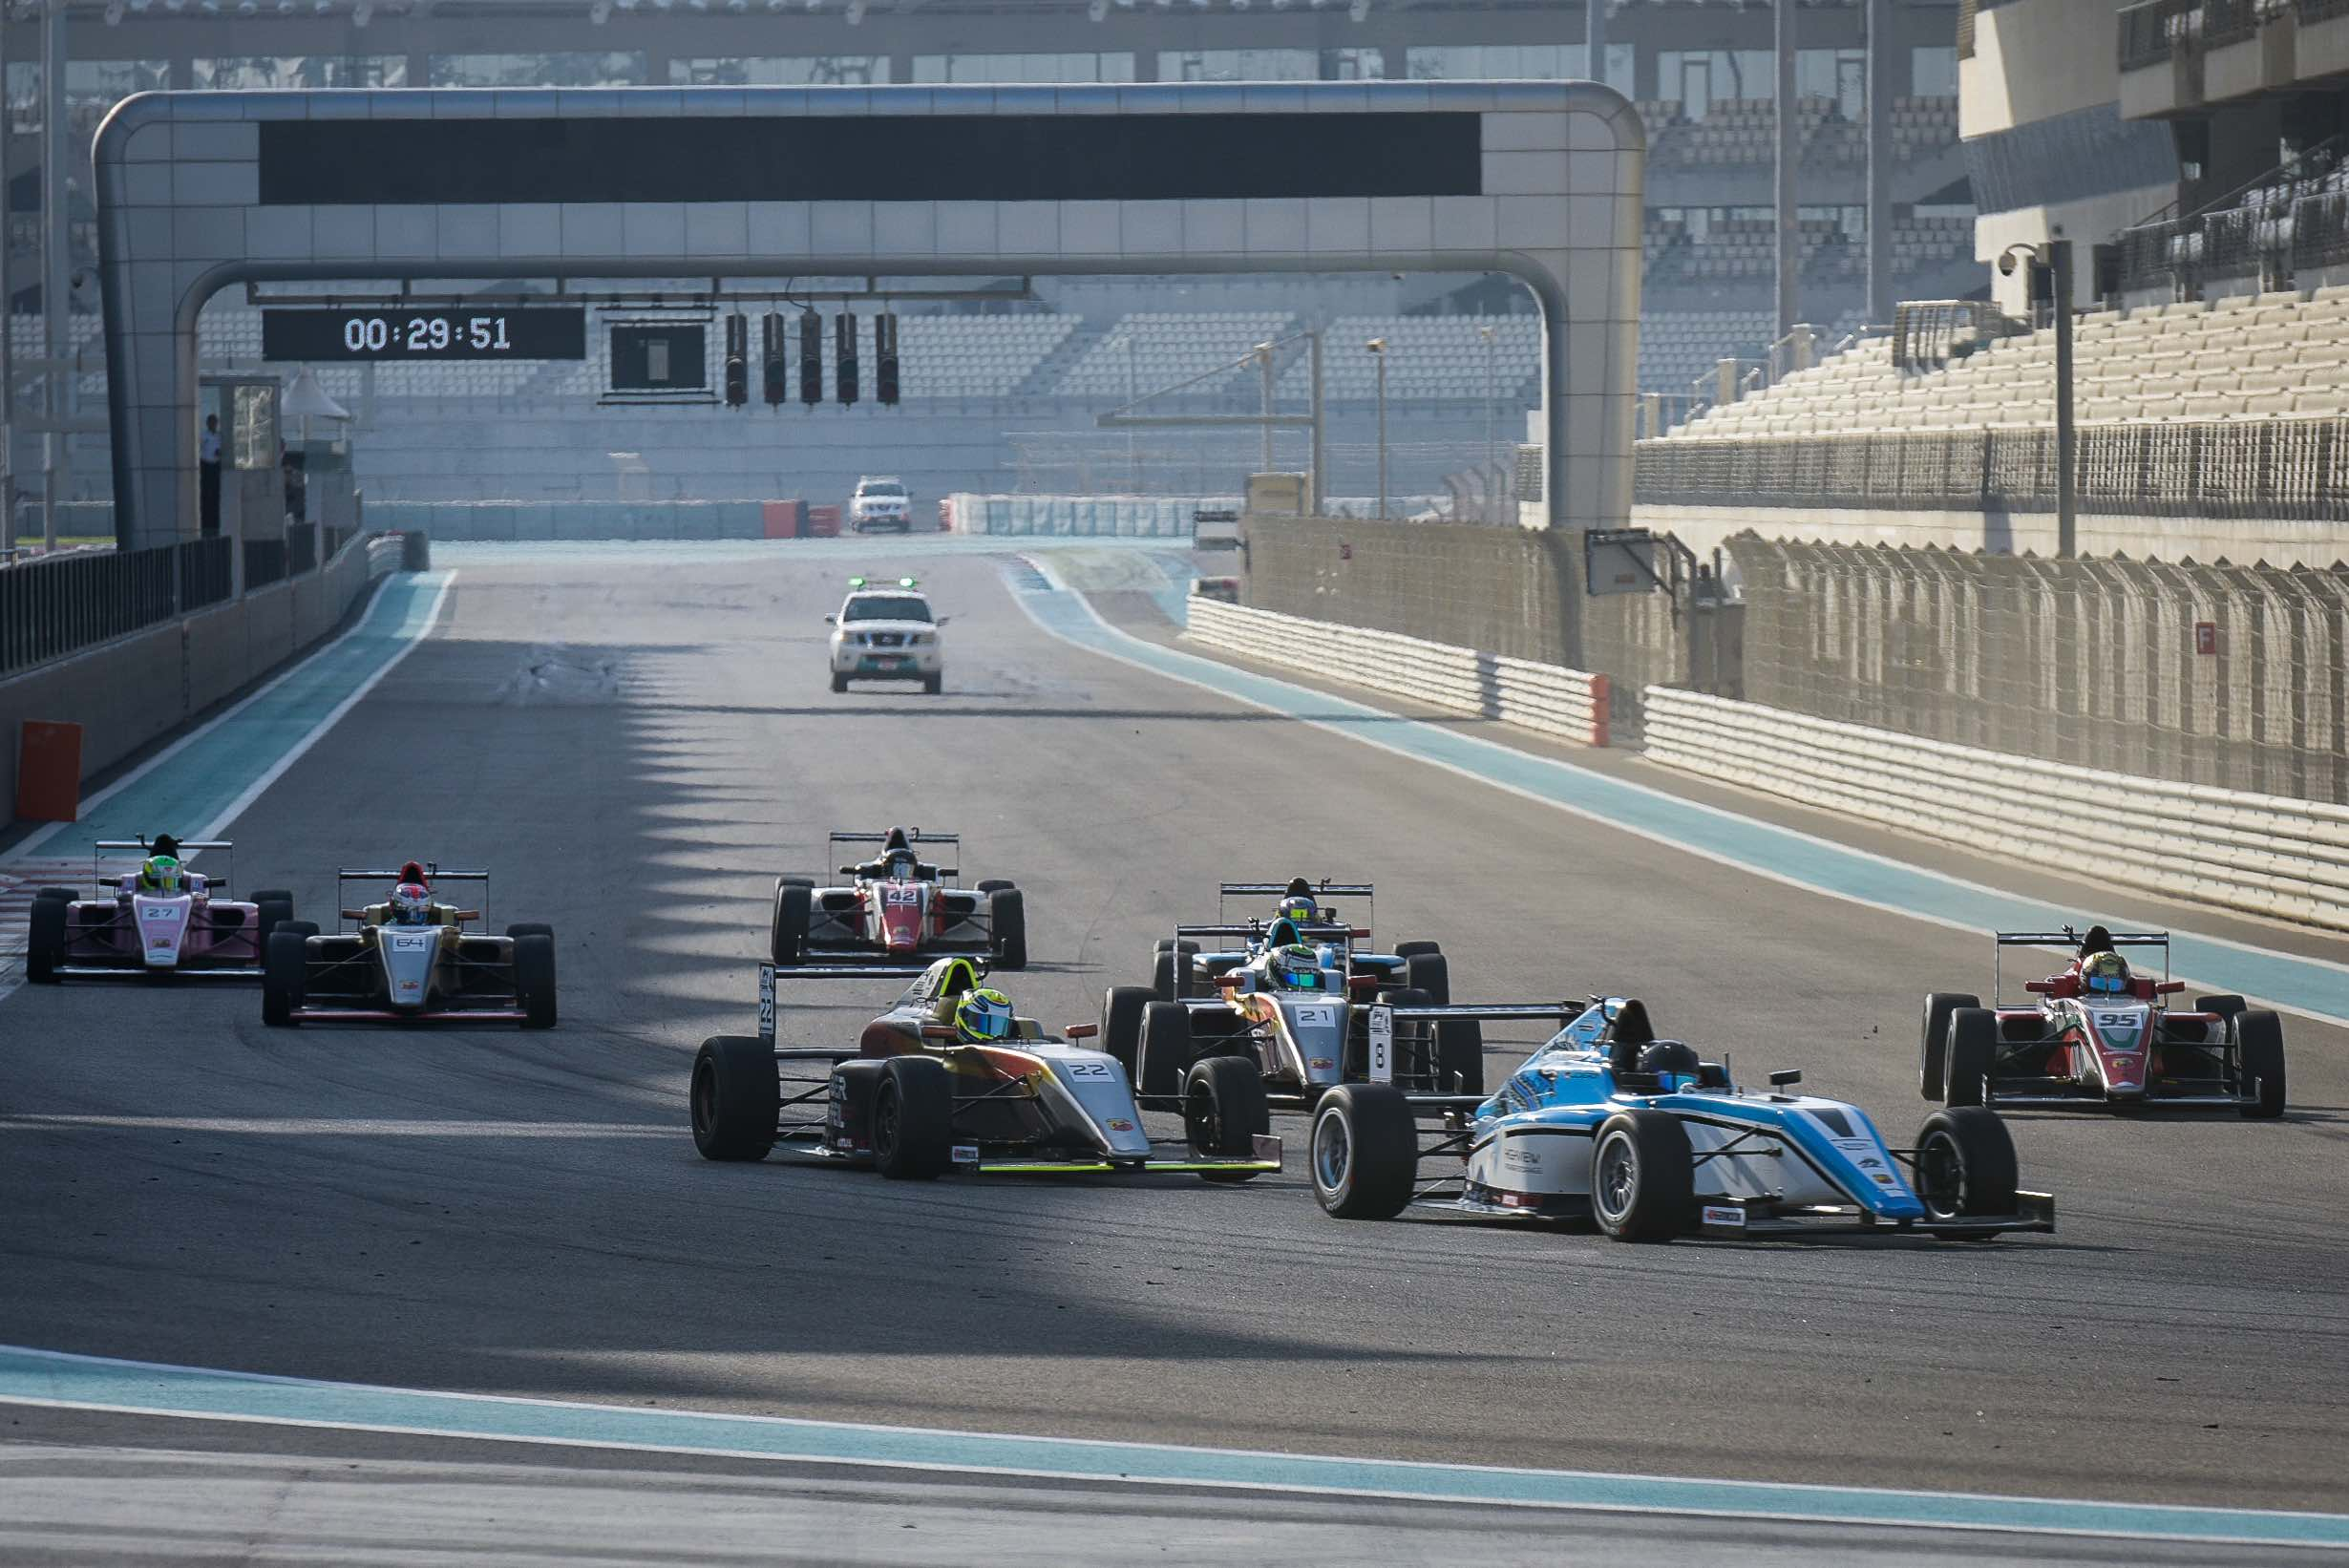 F4UAE Press_Yas Marina Circuit_small.jpg